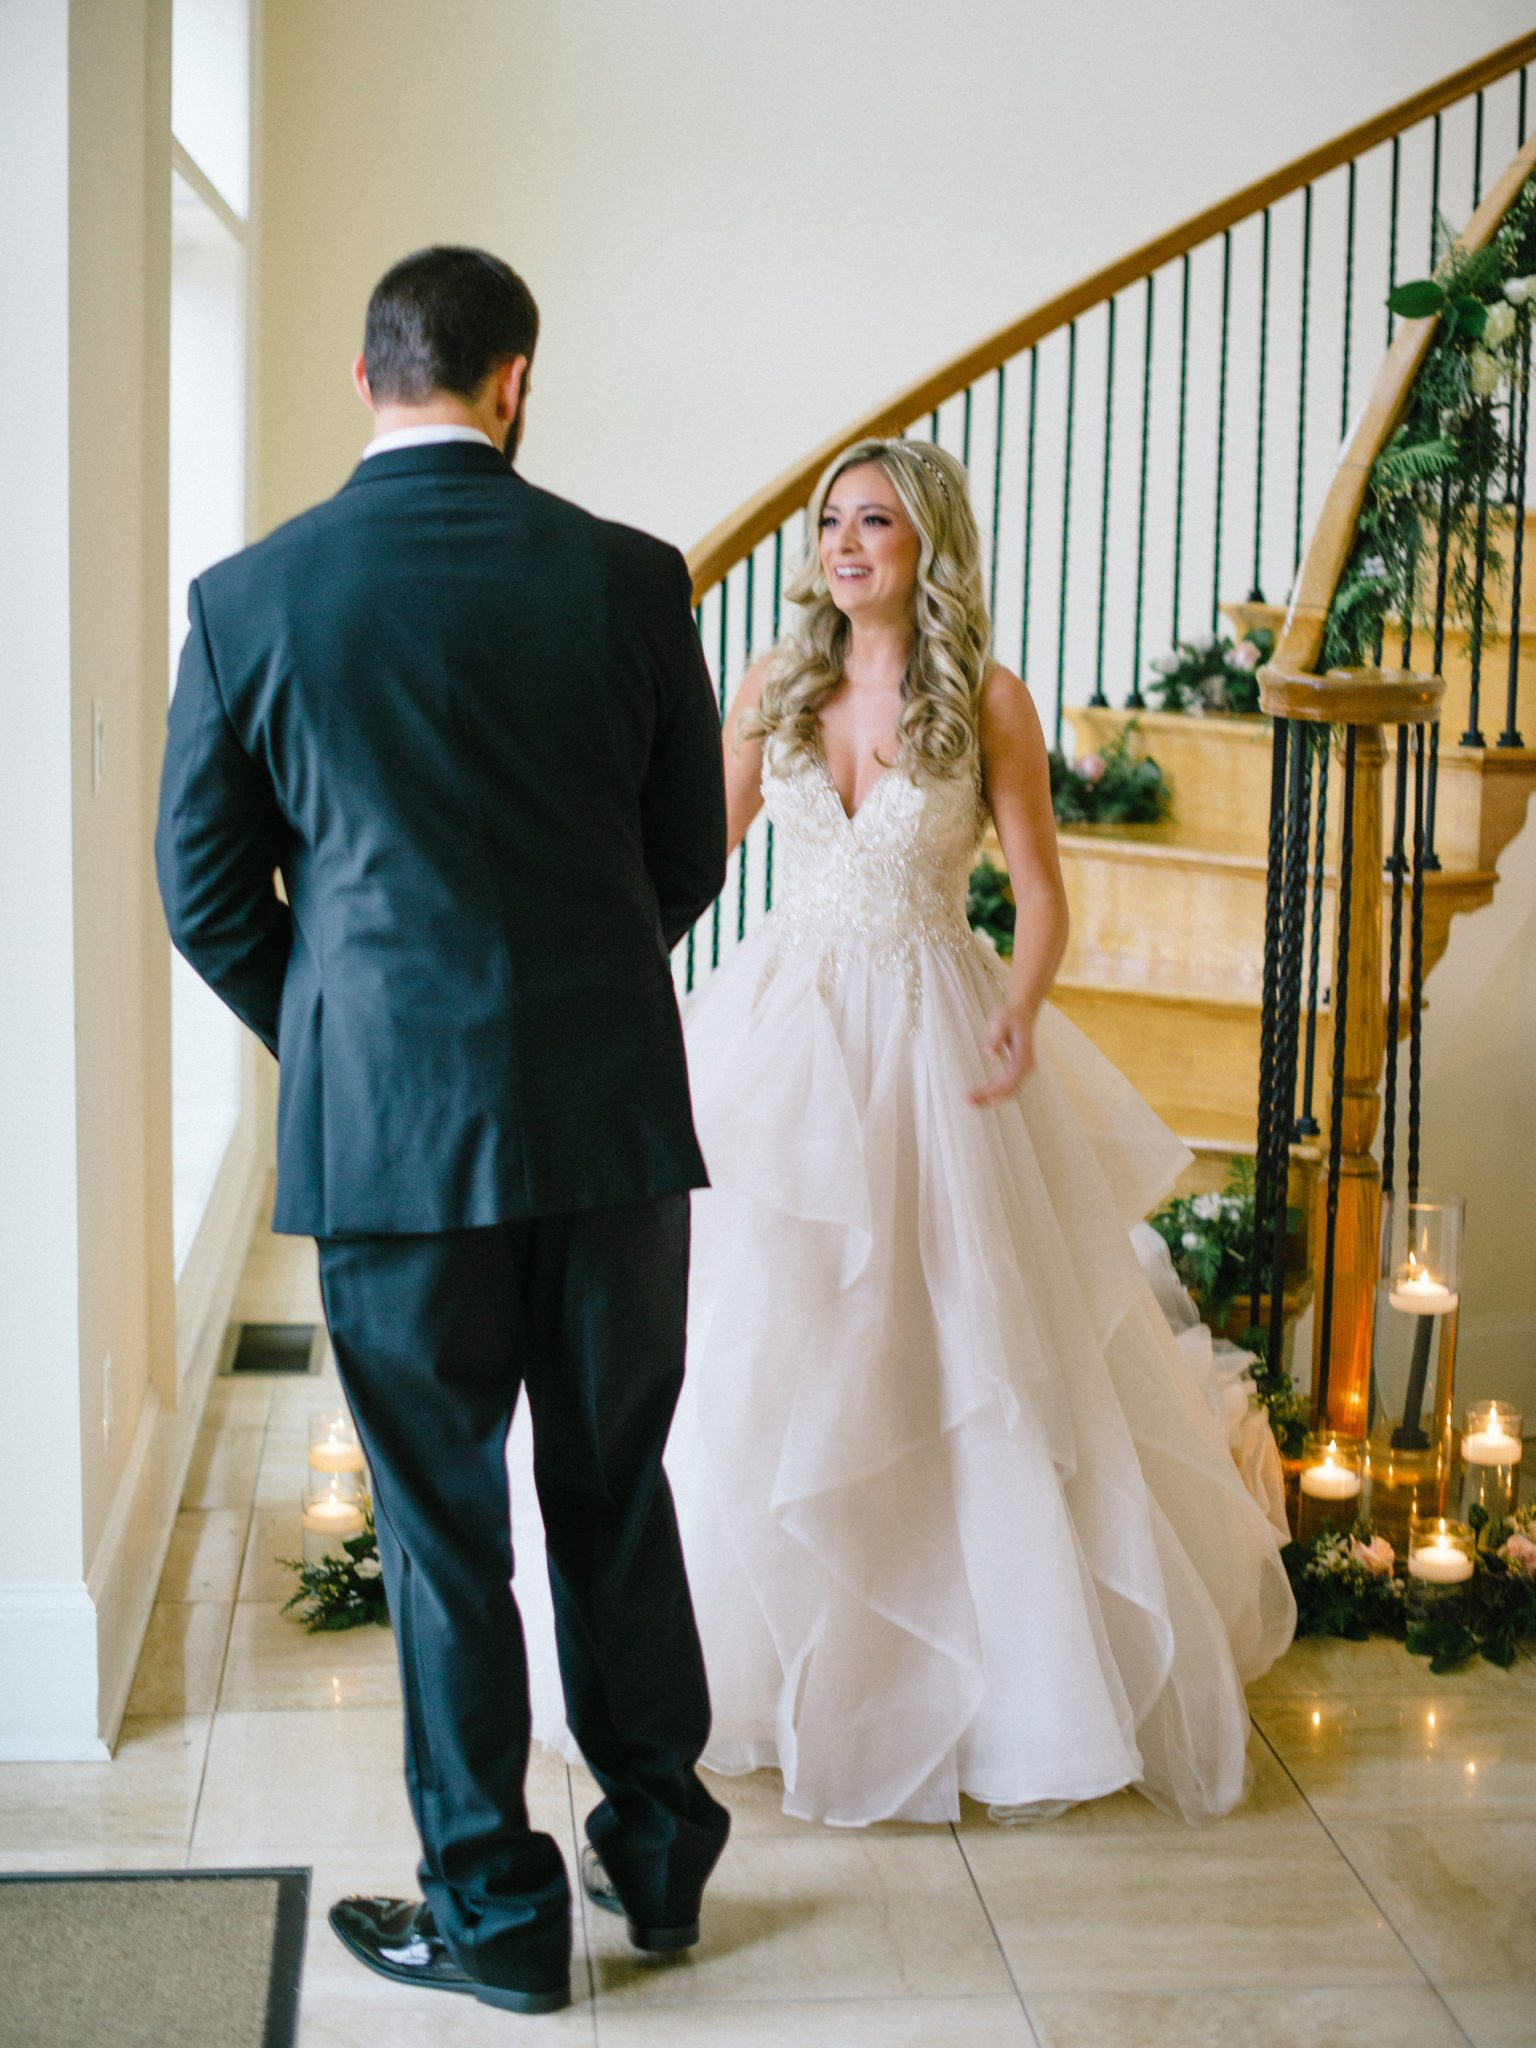 KimStockwellAshleyandMattMoraisVIneyardWedding147 Winter Weddings - A Snow Fairy Tale